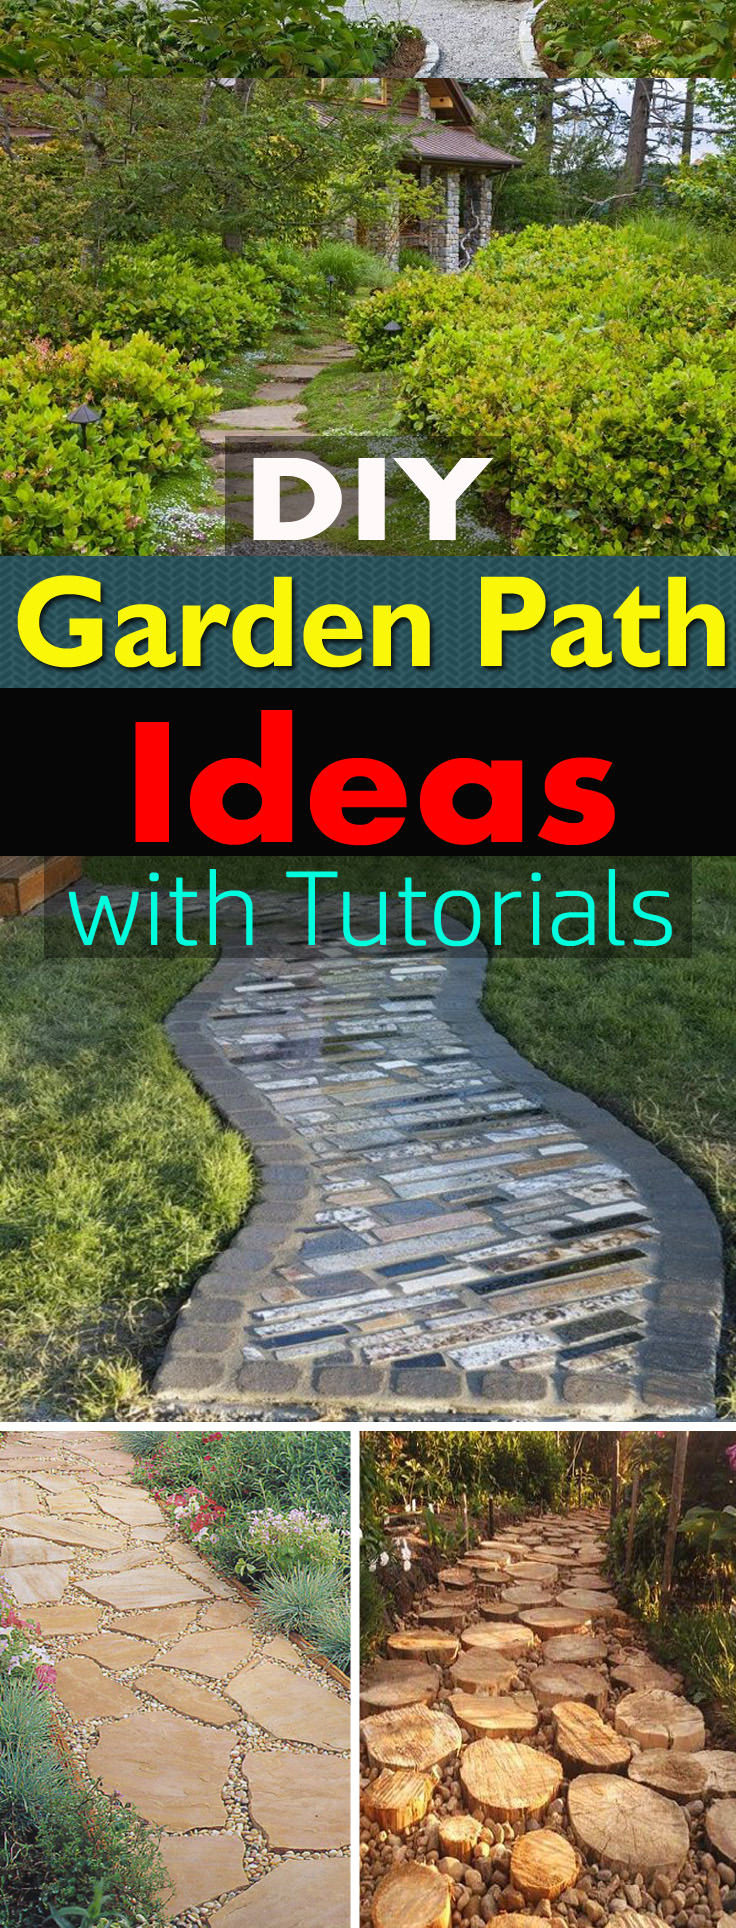 19 DIY Garden Path Ideas With Tutorials | Balcony Garden Web